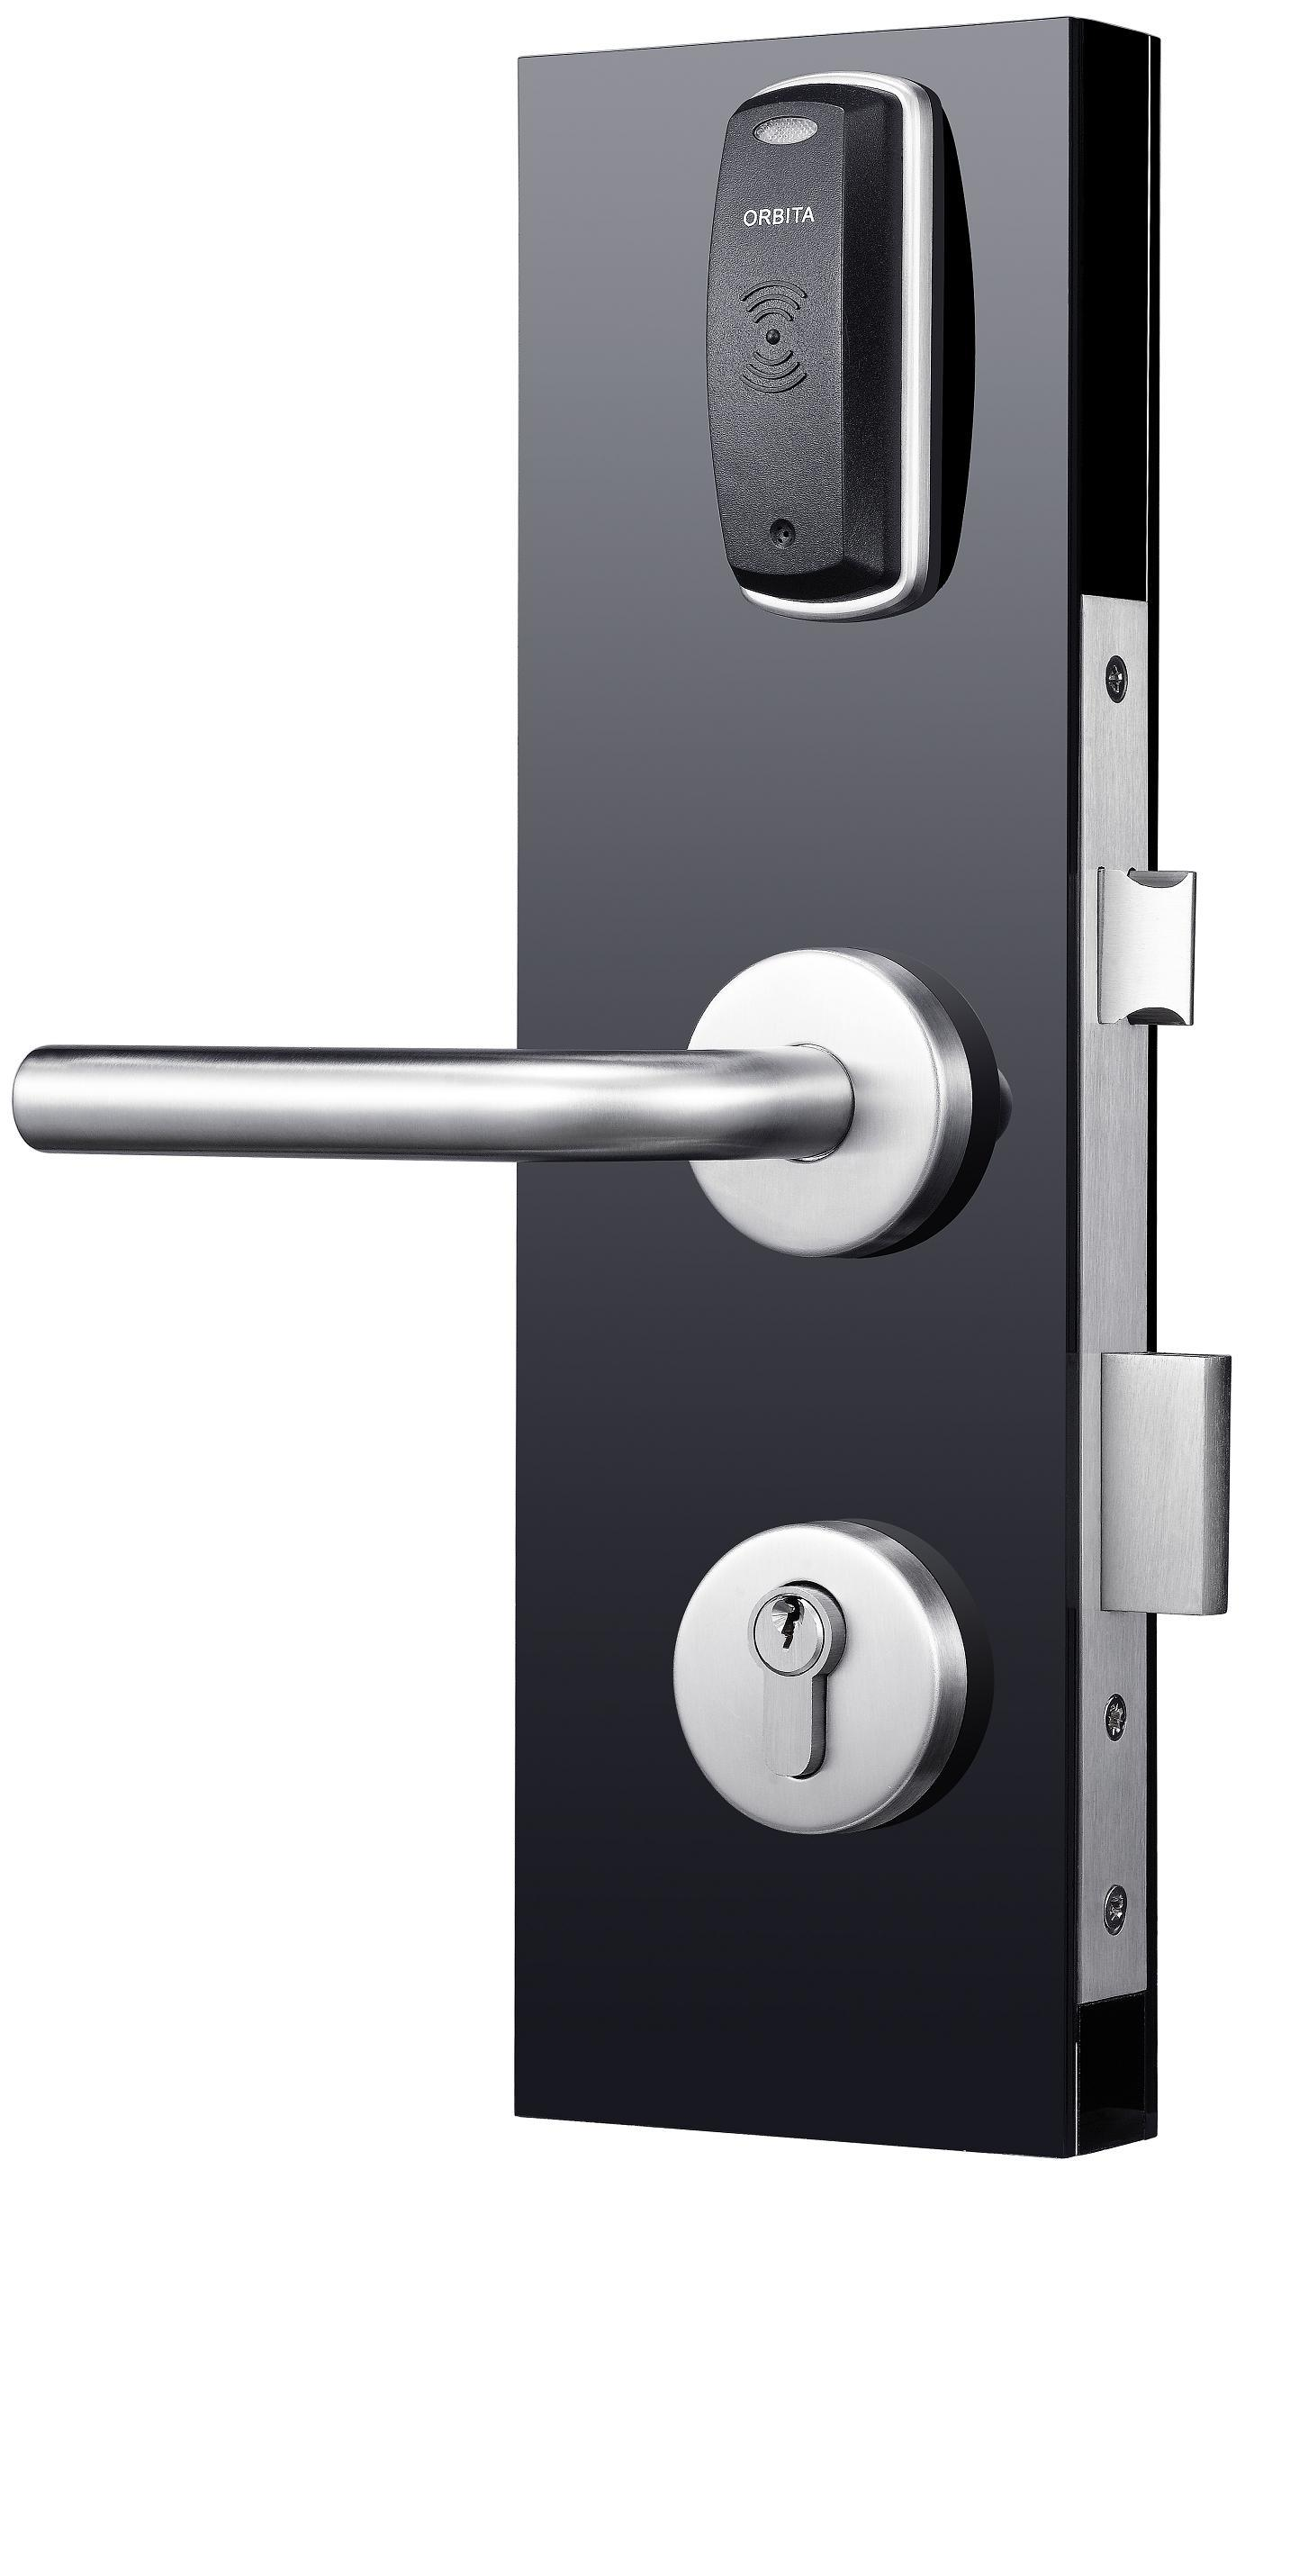 Hotel-Lock-Card-Lock-Door-Lock-S3062z.jpg